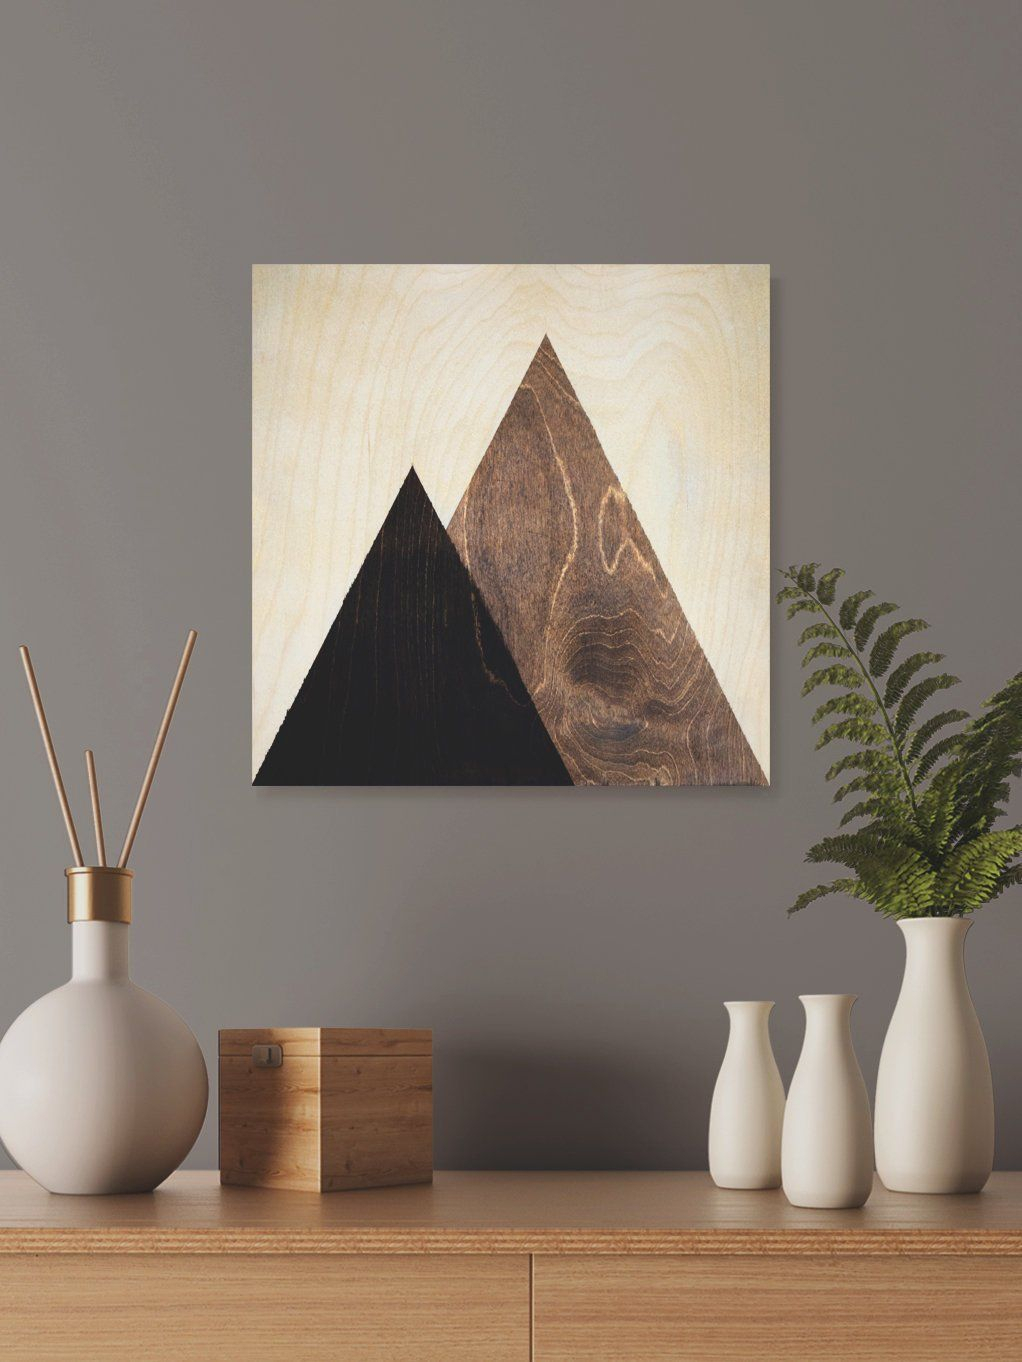 Contemporary Mountain Wall Decor, Dorm Wall Hanging Gift Inside Contemporary Geometric Wall Decor (View 5 of 30)